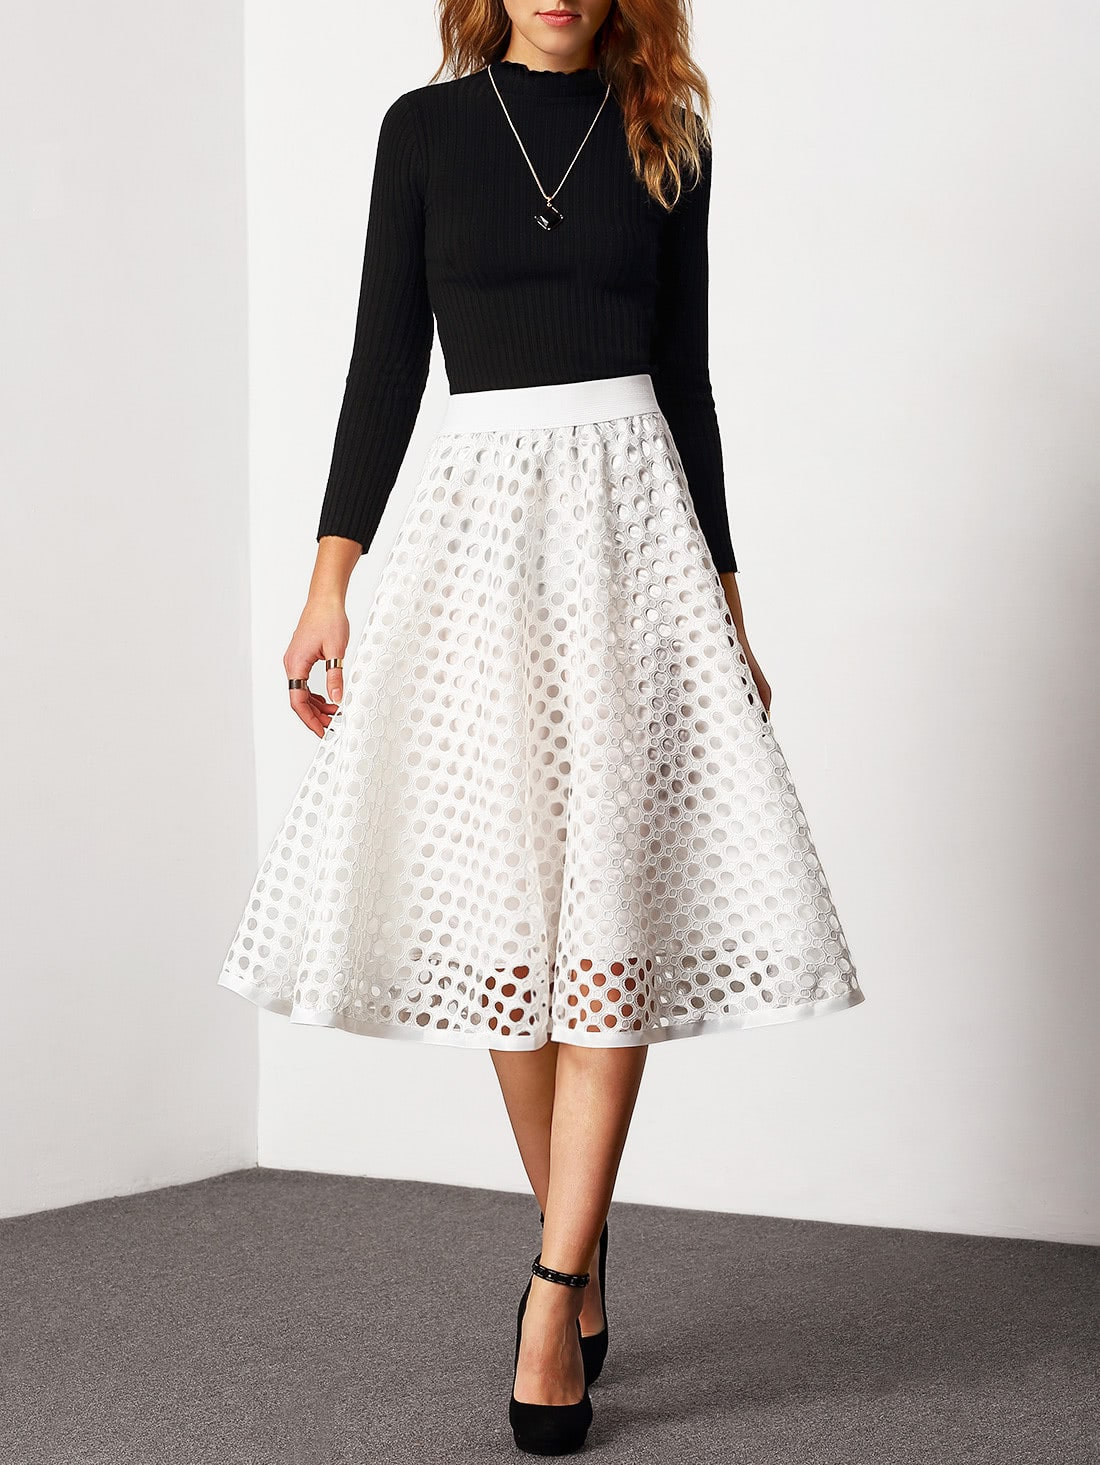 White High Waist Eyelet Skirt -SheIn(Sheinside)